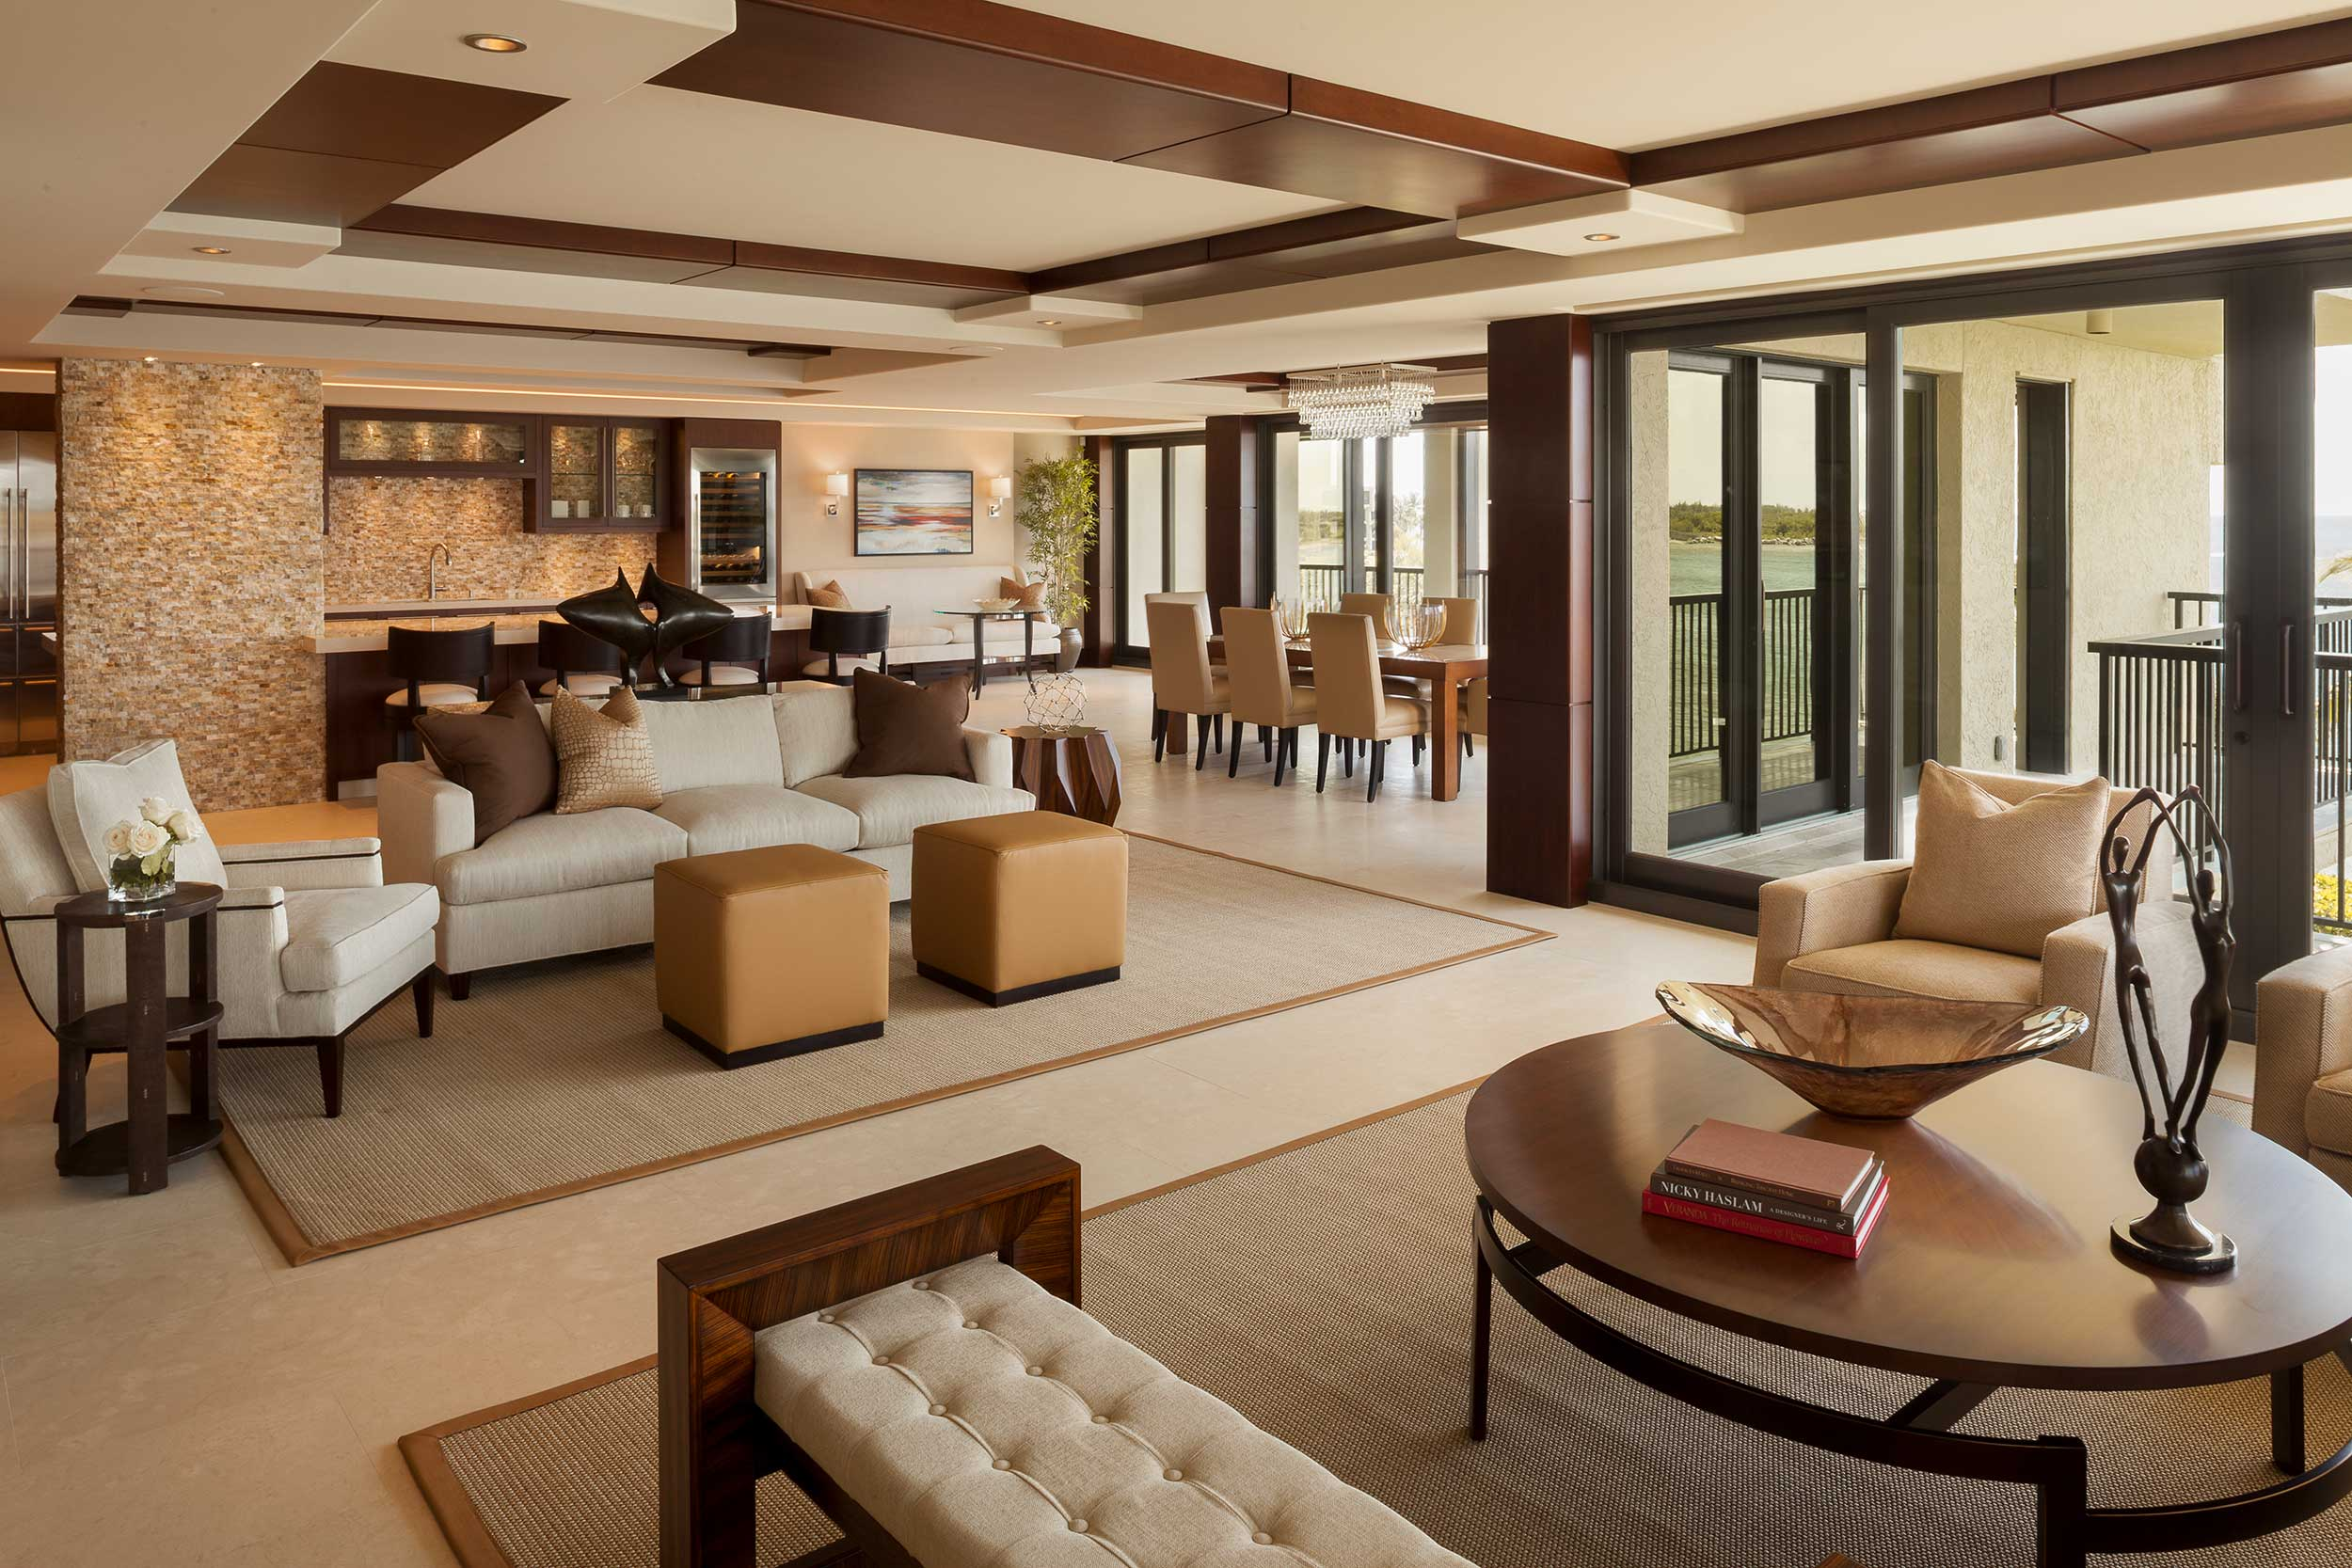 Open living space with atmospheric interior design, FL